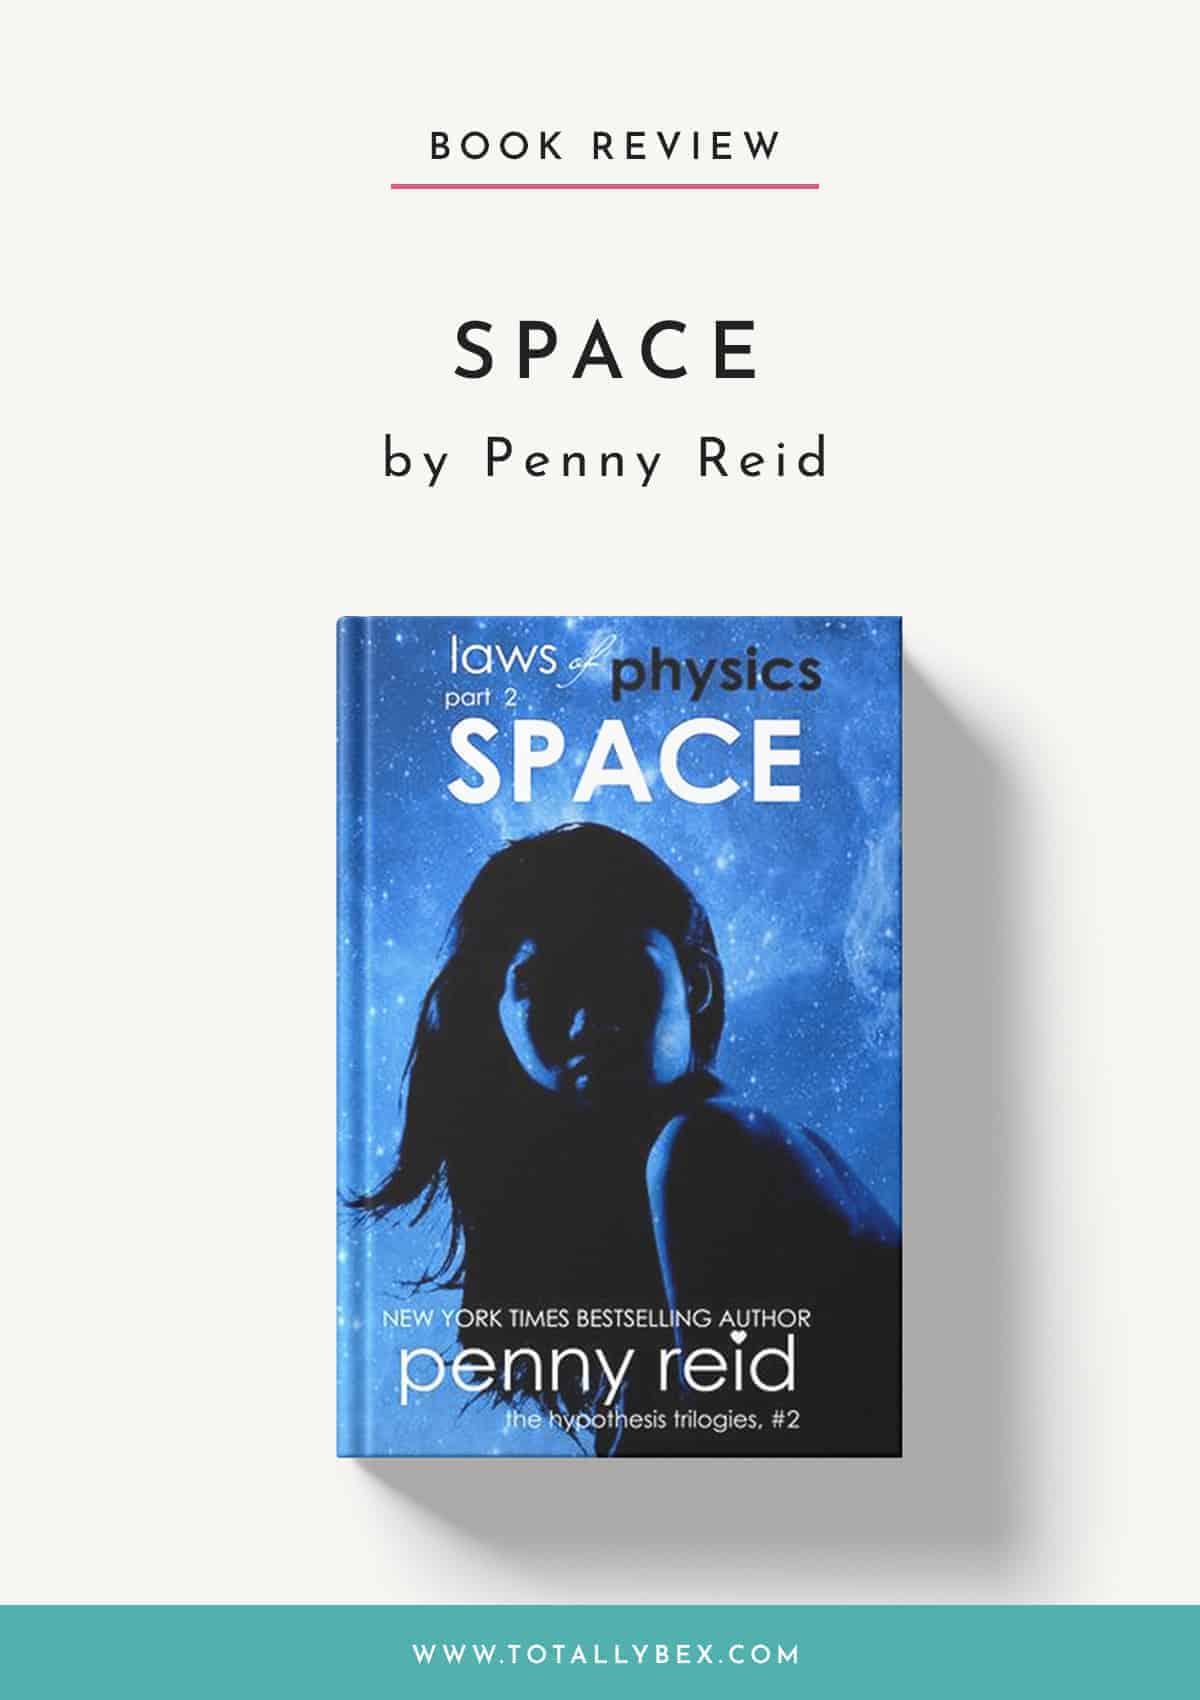 Space by Penny Reid-Book Review